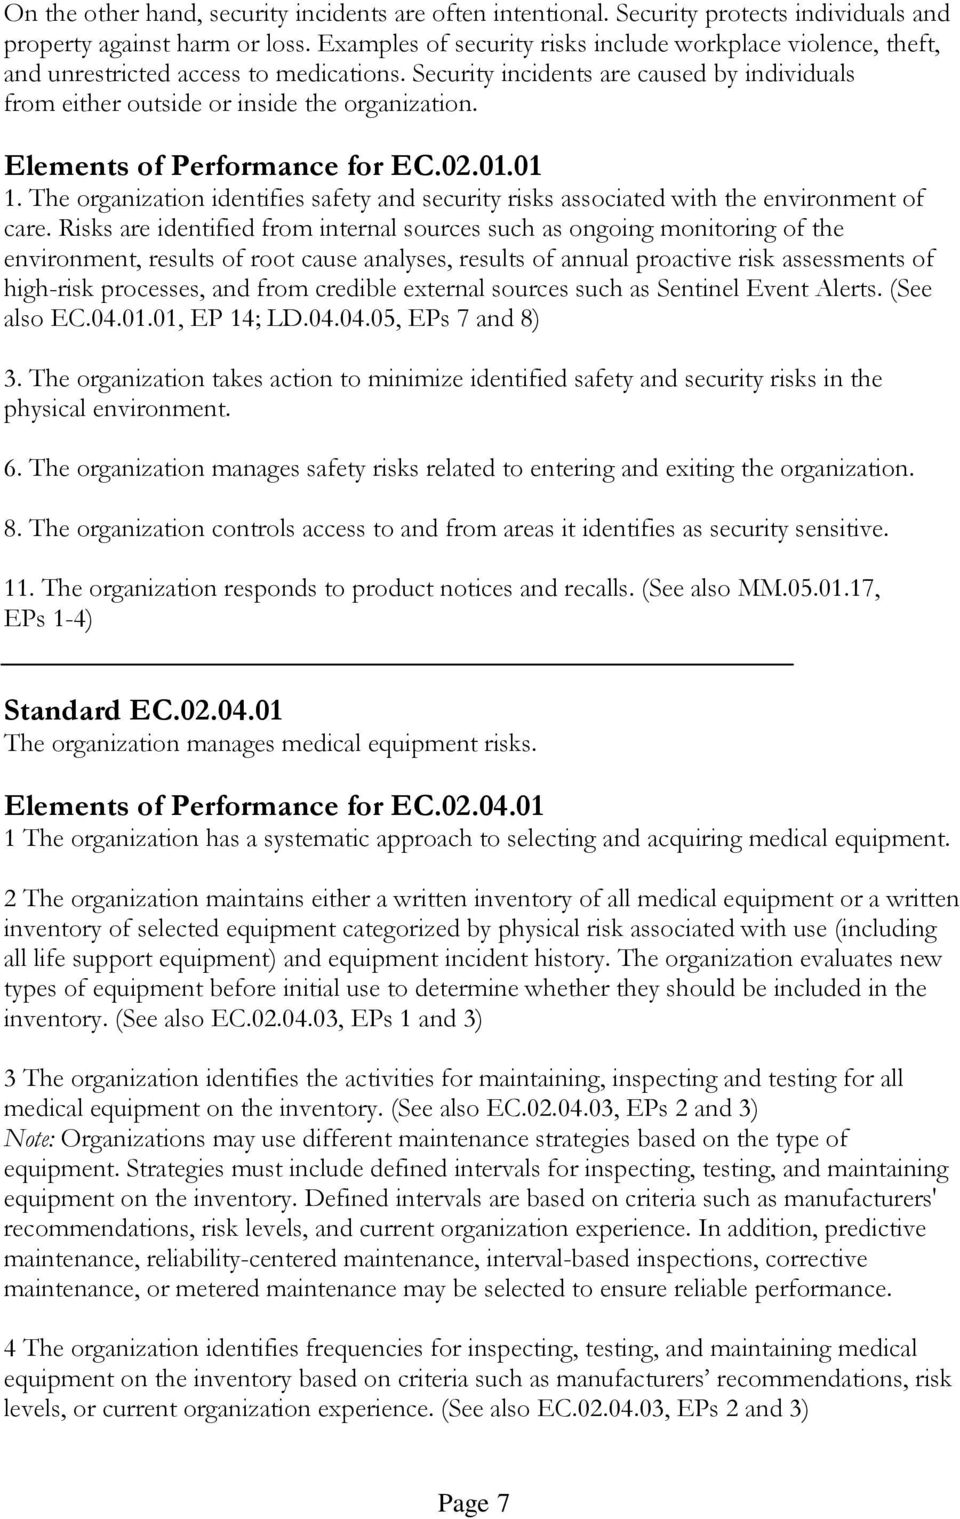 Elements of Performance for EC.02.01.01 1. The organization identifies safety and security risks associated with the environment of care.